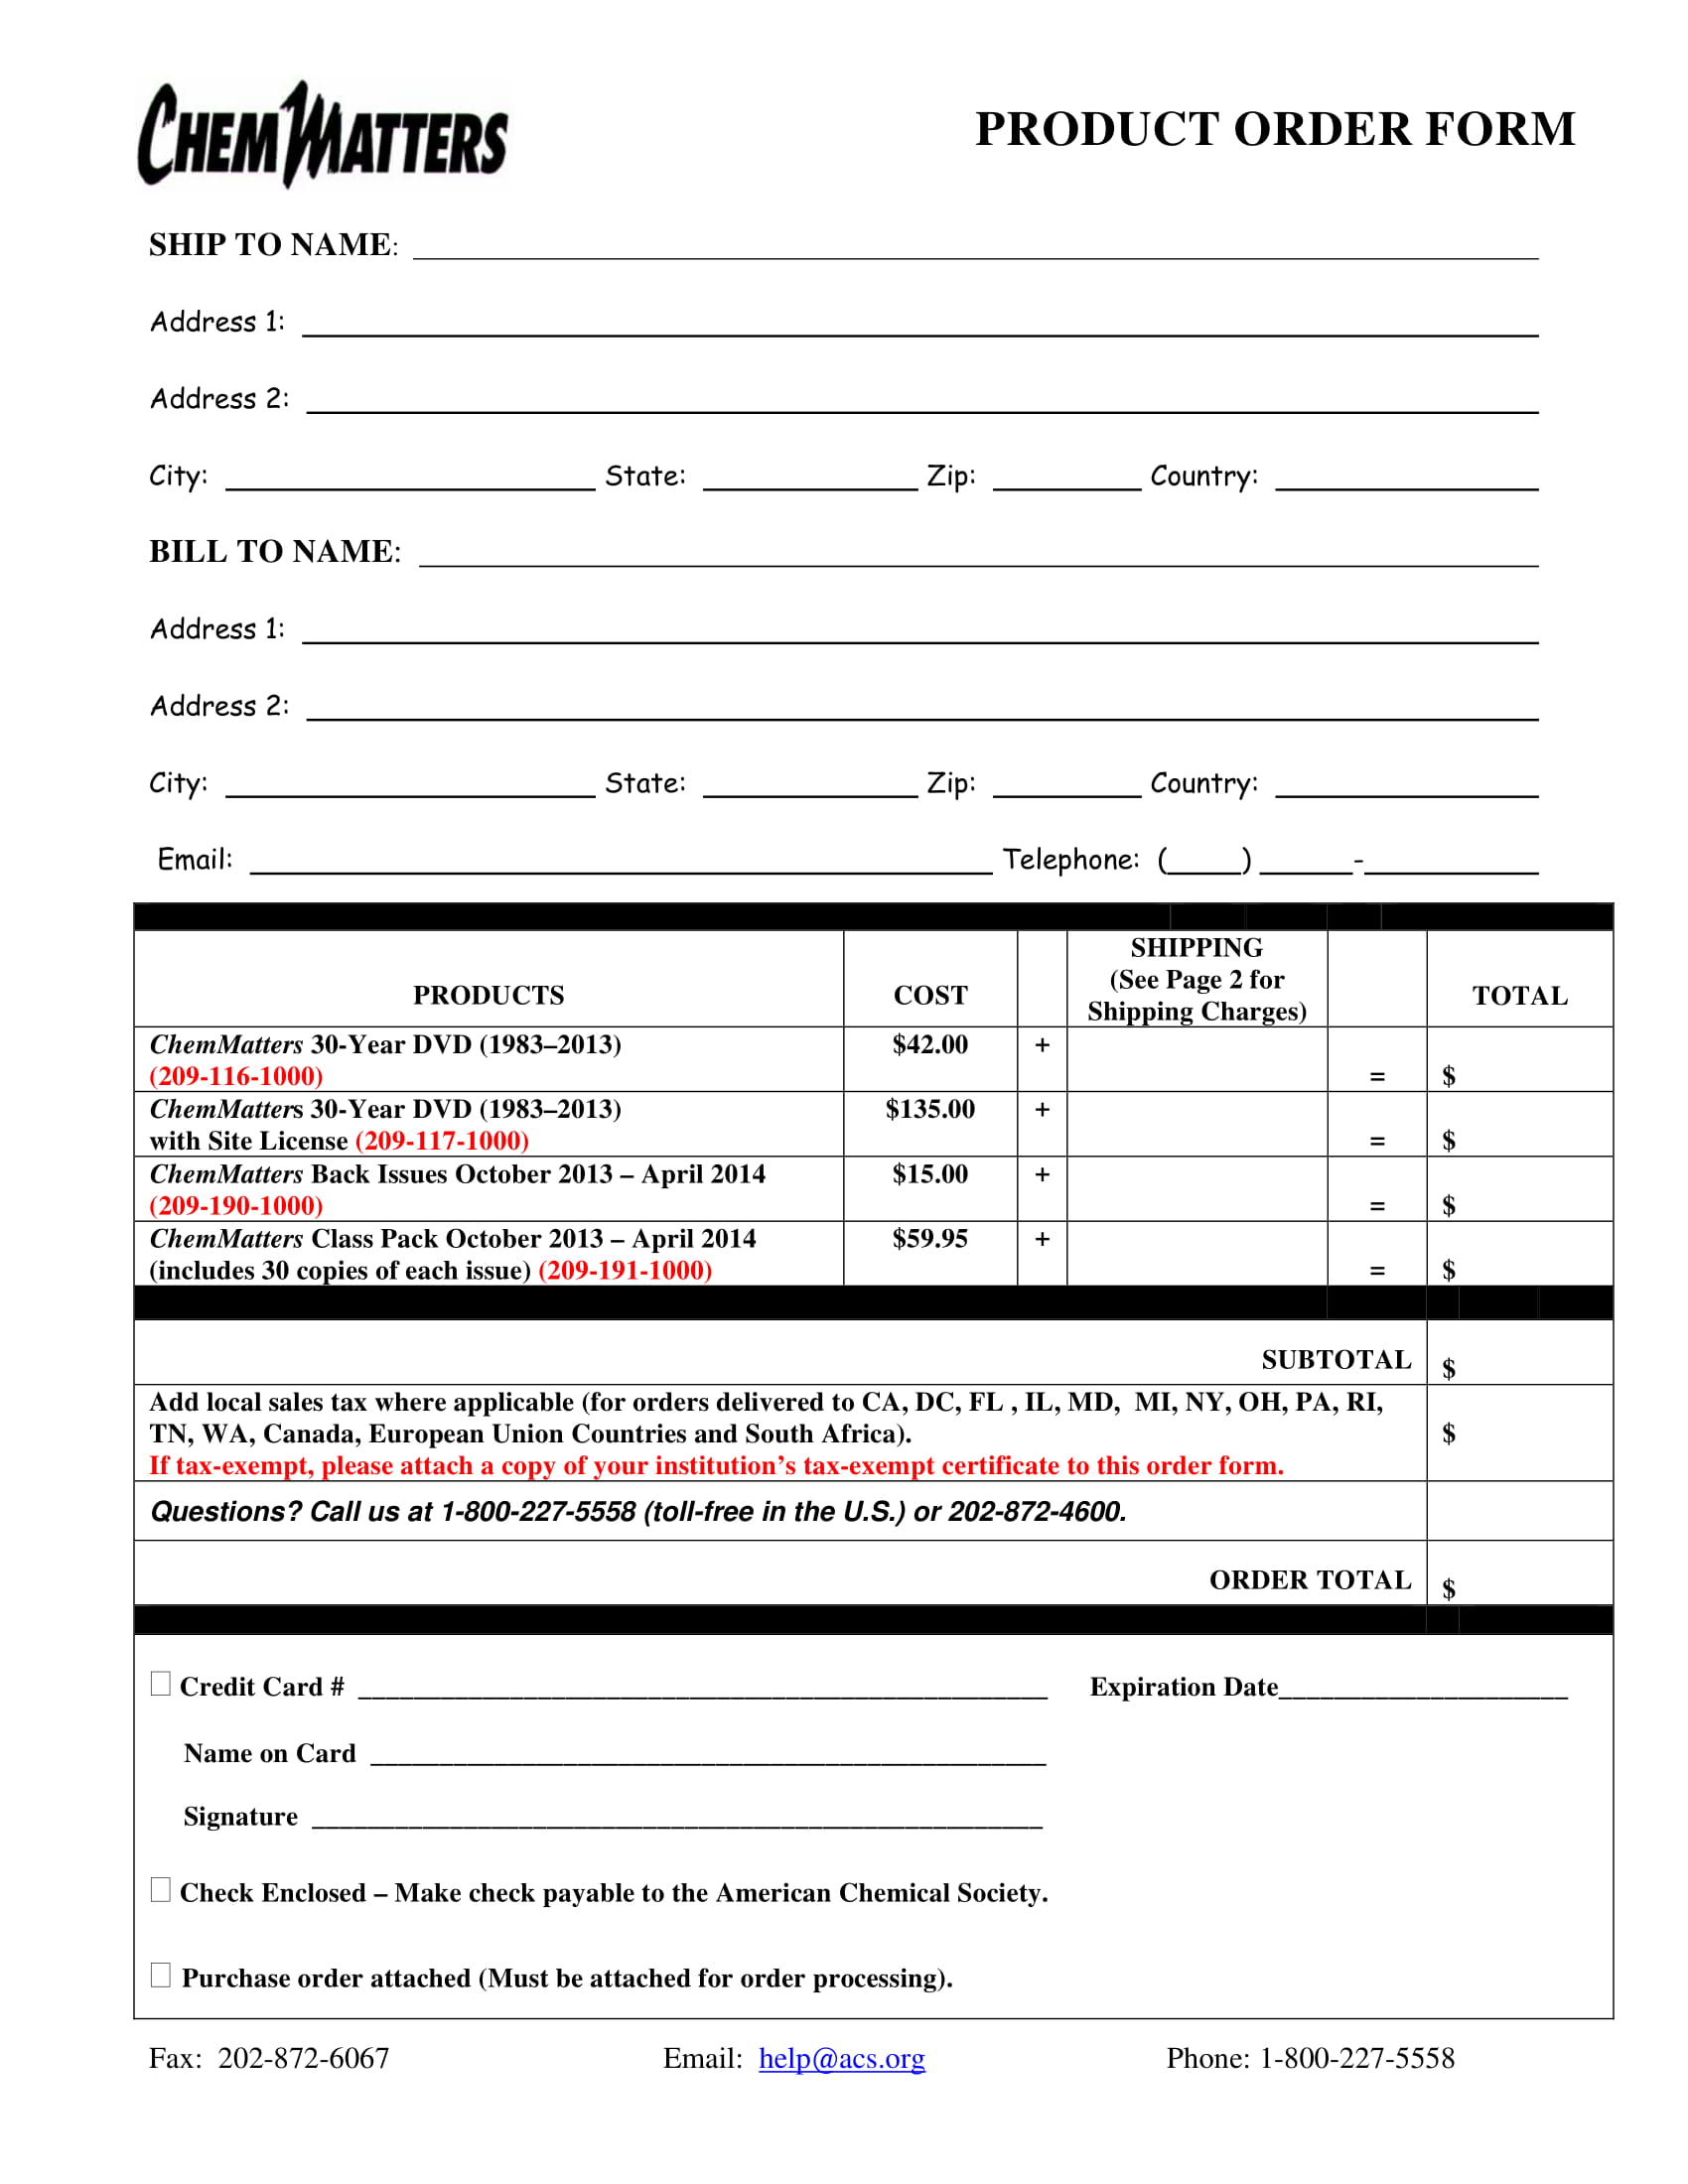 product order form sample 1